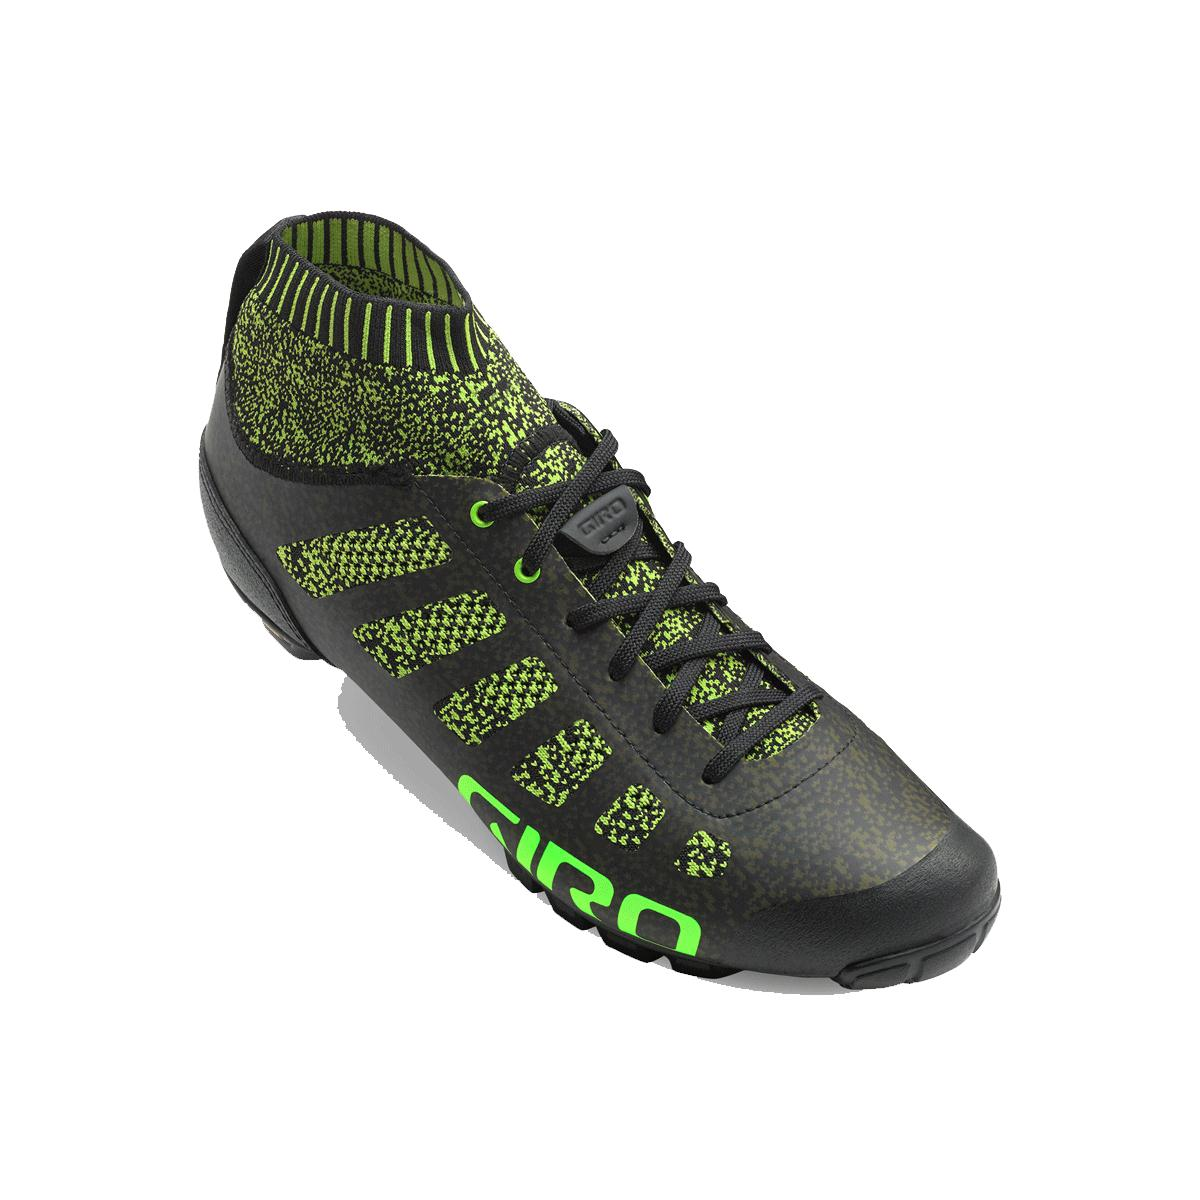 GIRO Empire VR70 Knit MTB Cycling Shoes 2018 Lime/Black 47